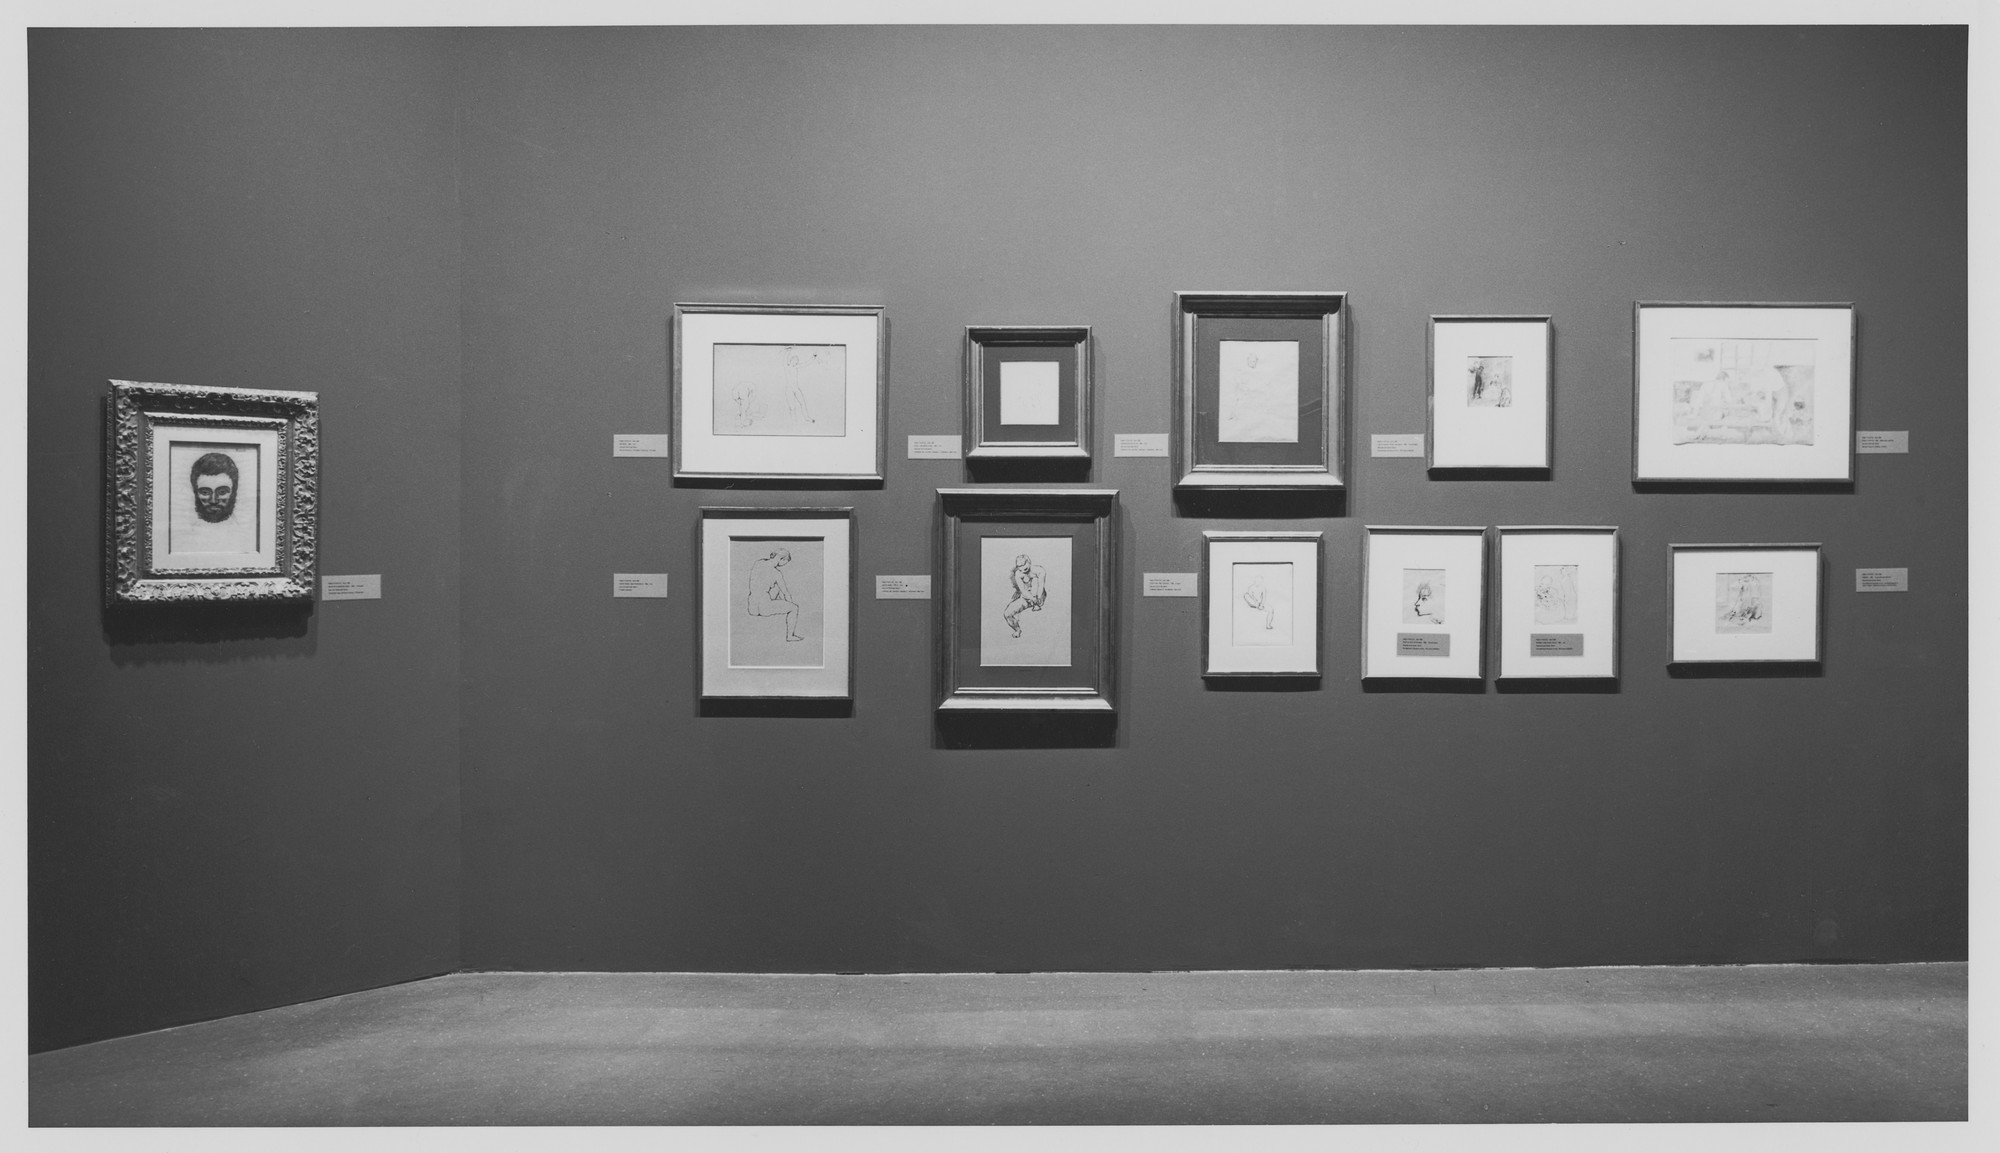 "Installation view of the exhibition, ""Four Americans in Paris:  The Collection of Gertrude Stein and her Family"" December 19, 1970–March 1, 1971. Photographic Archive. The Museum of Modern Art Archives, New York. IN950.1. Photograph by James Mathews."